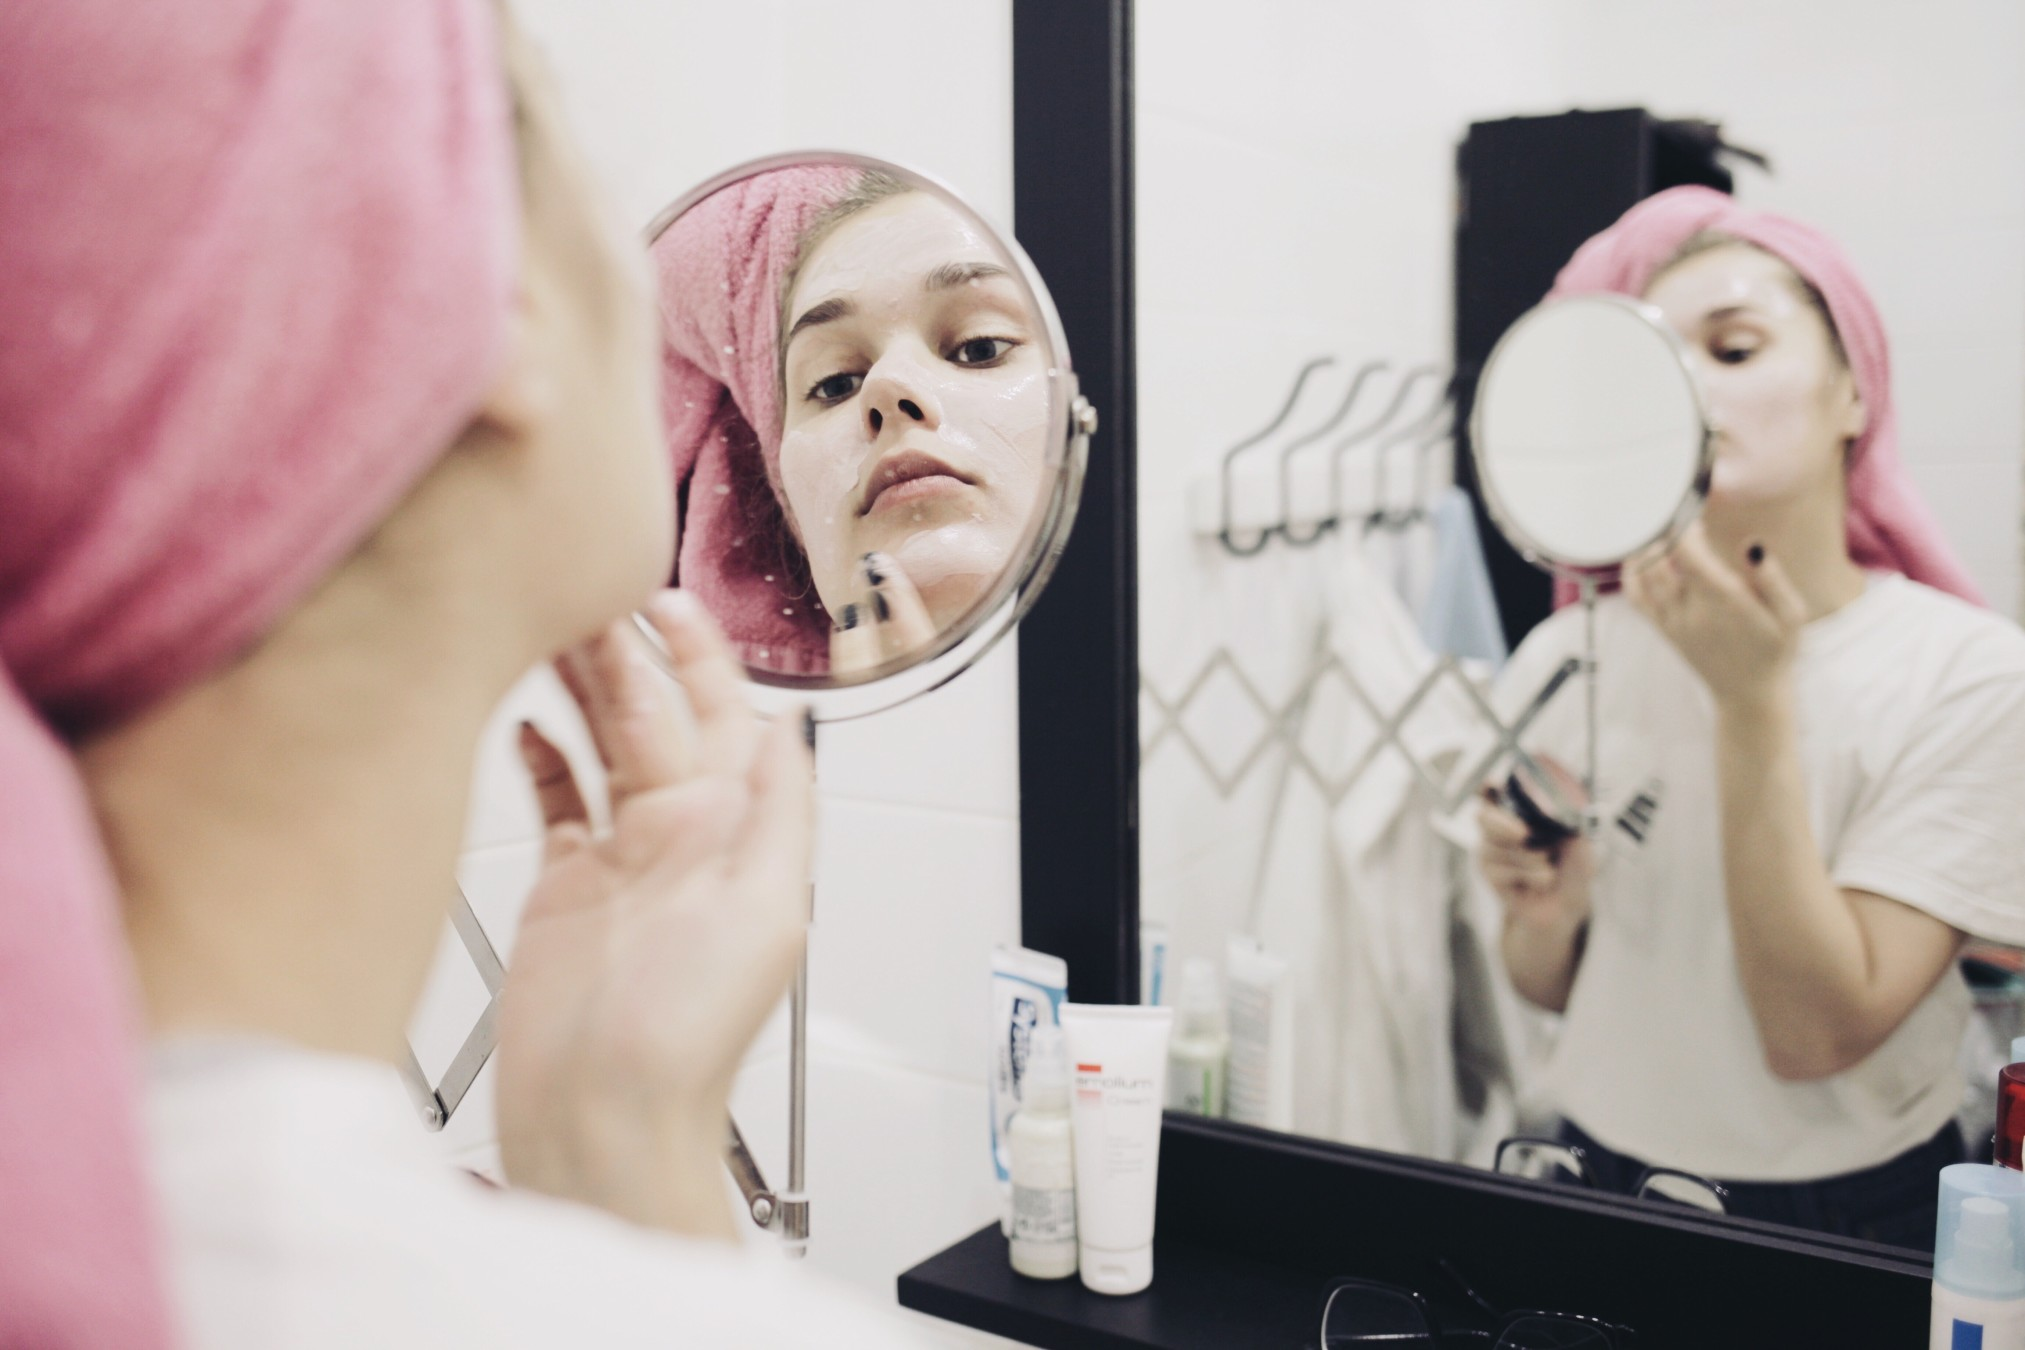 Imag of woman examining her face in the mirror - skin care in periods